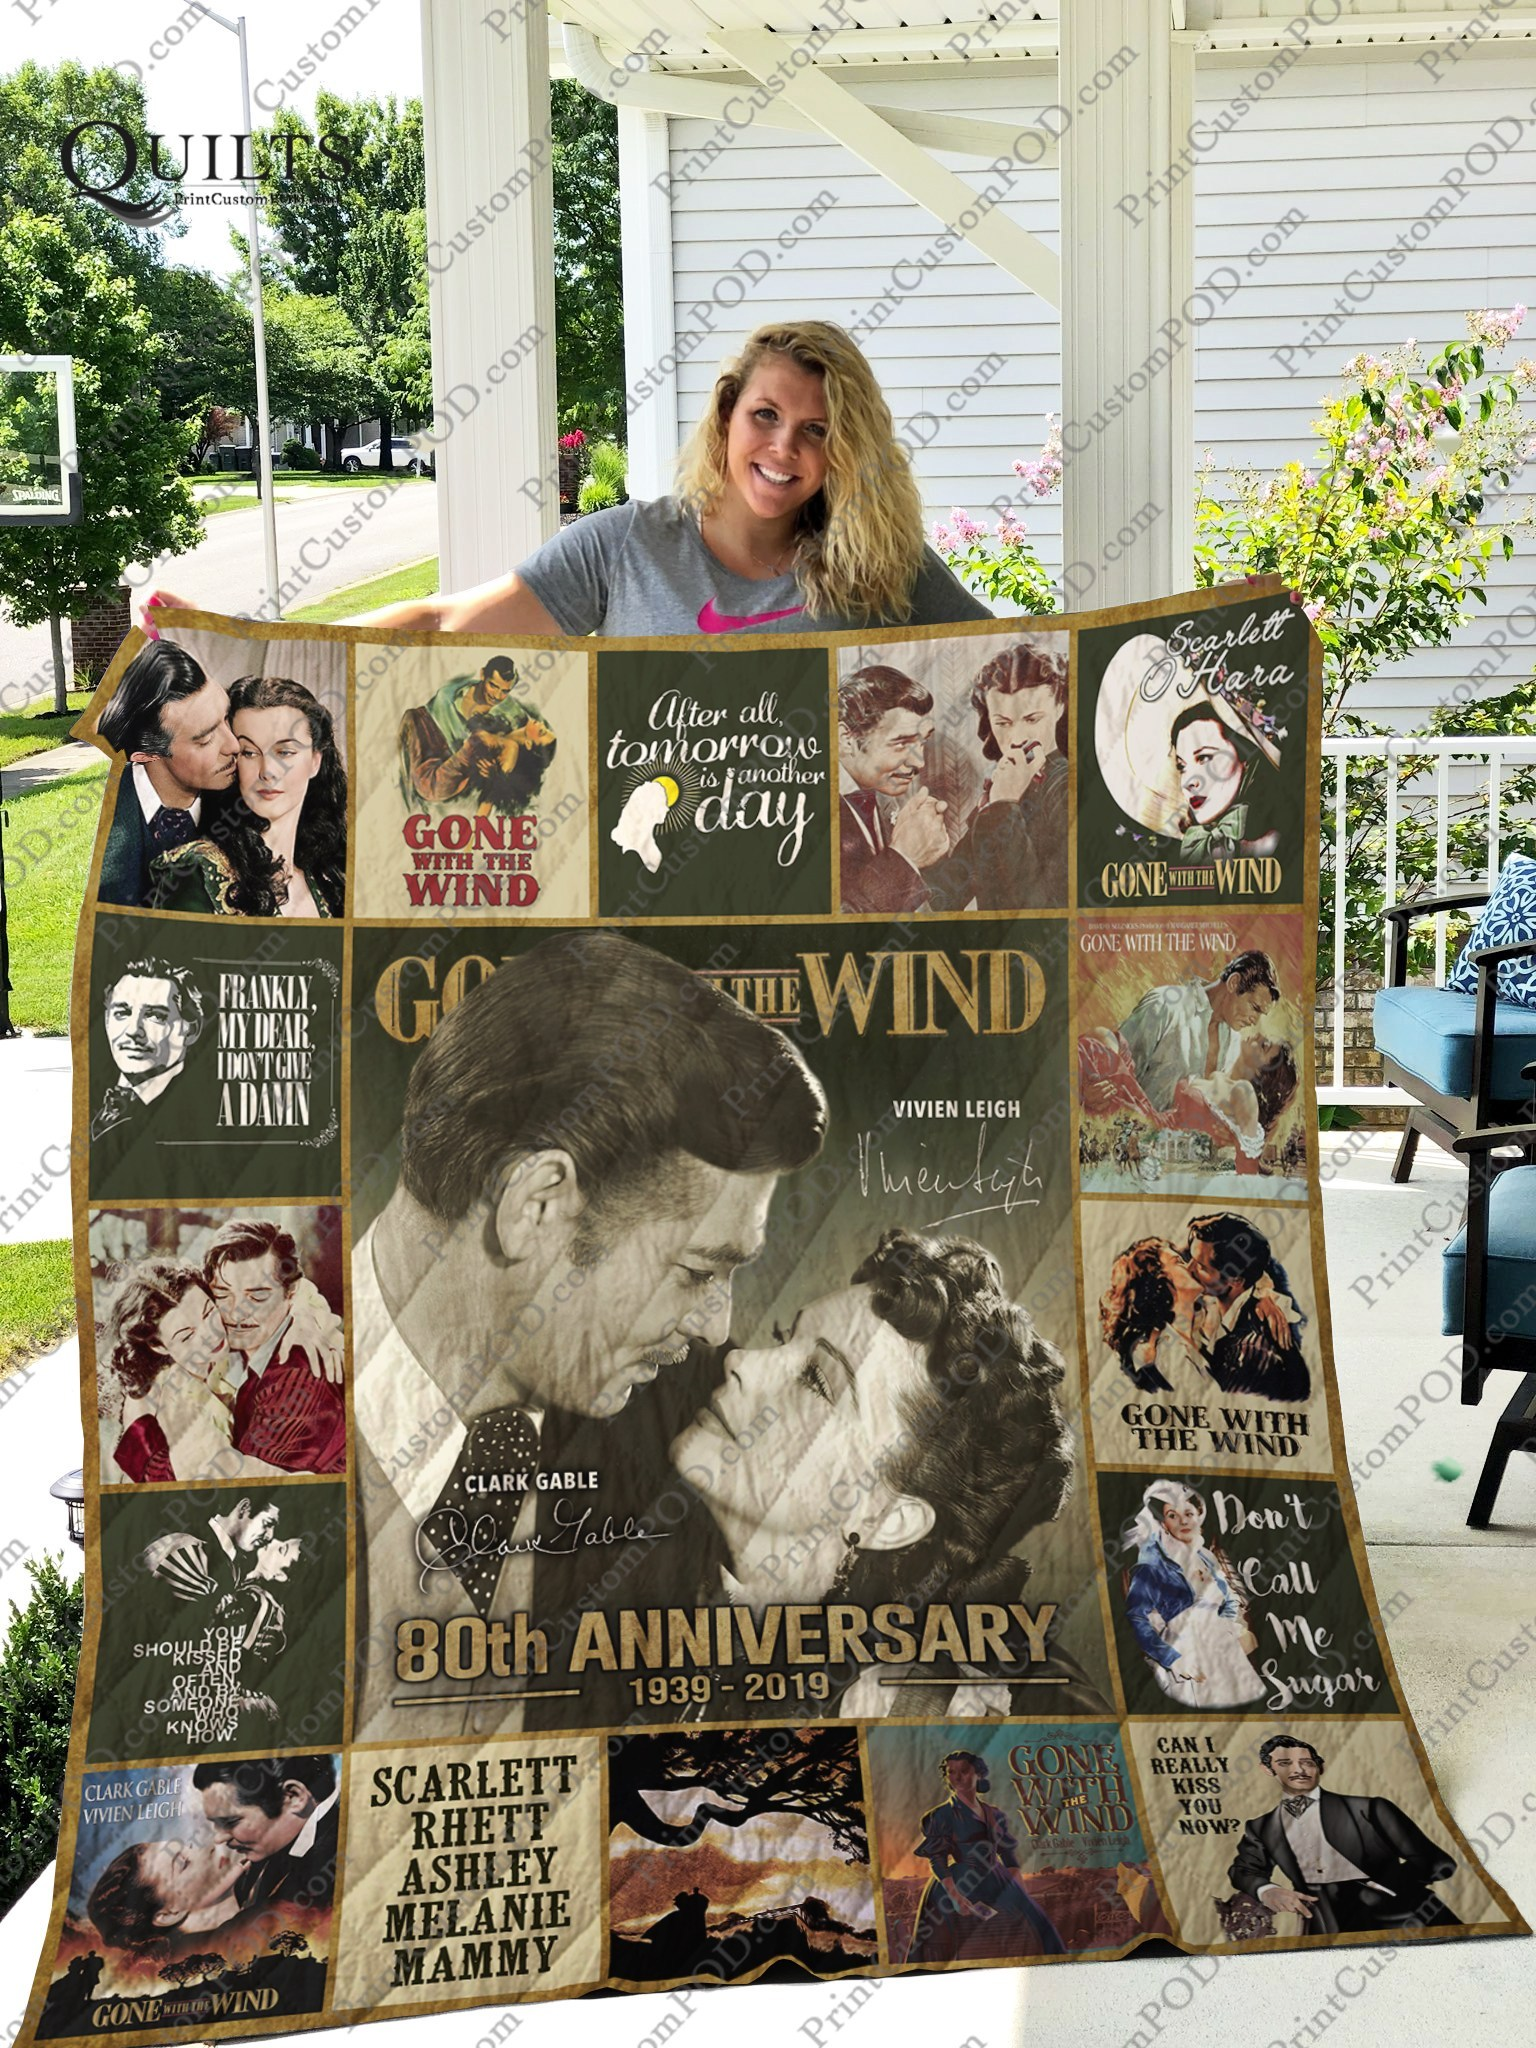 Gone with the wind 80th anniversary quilt 4